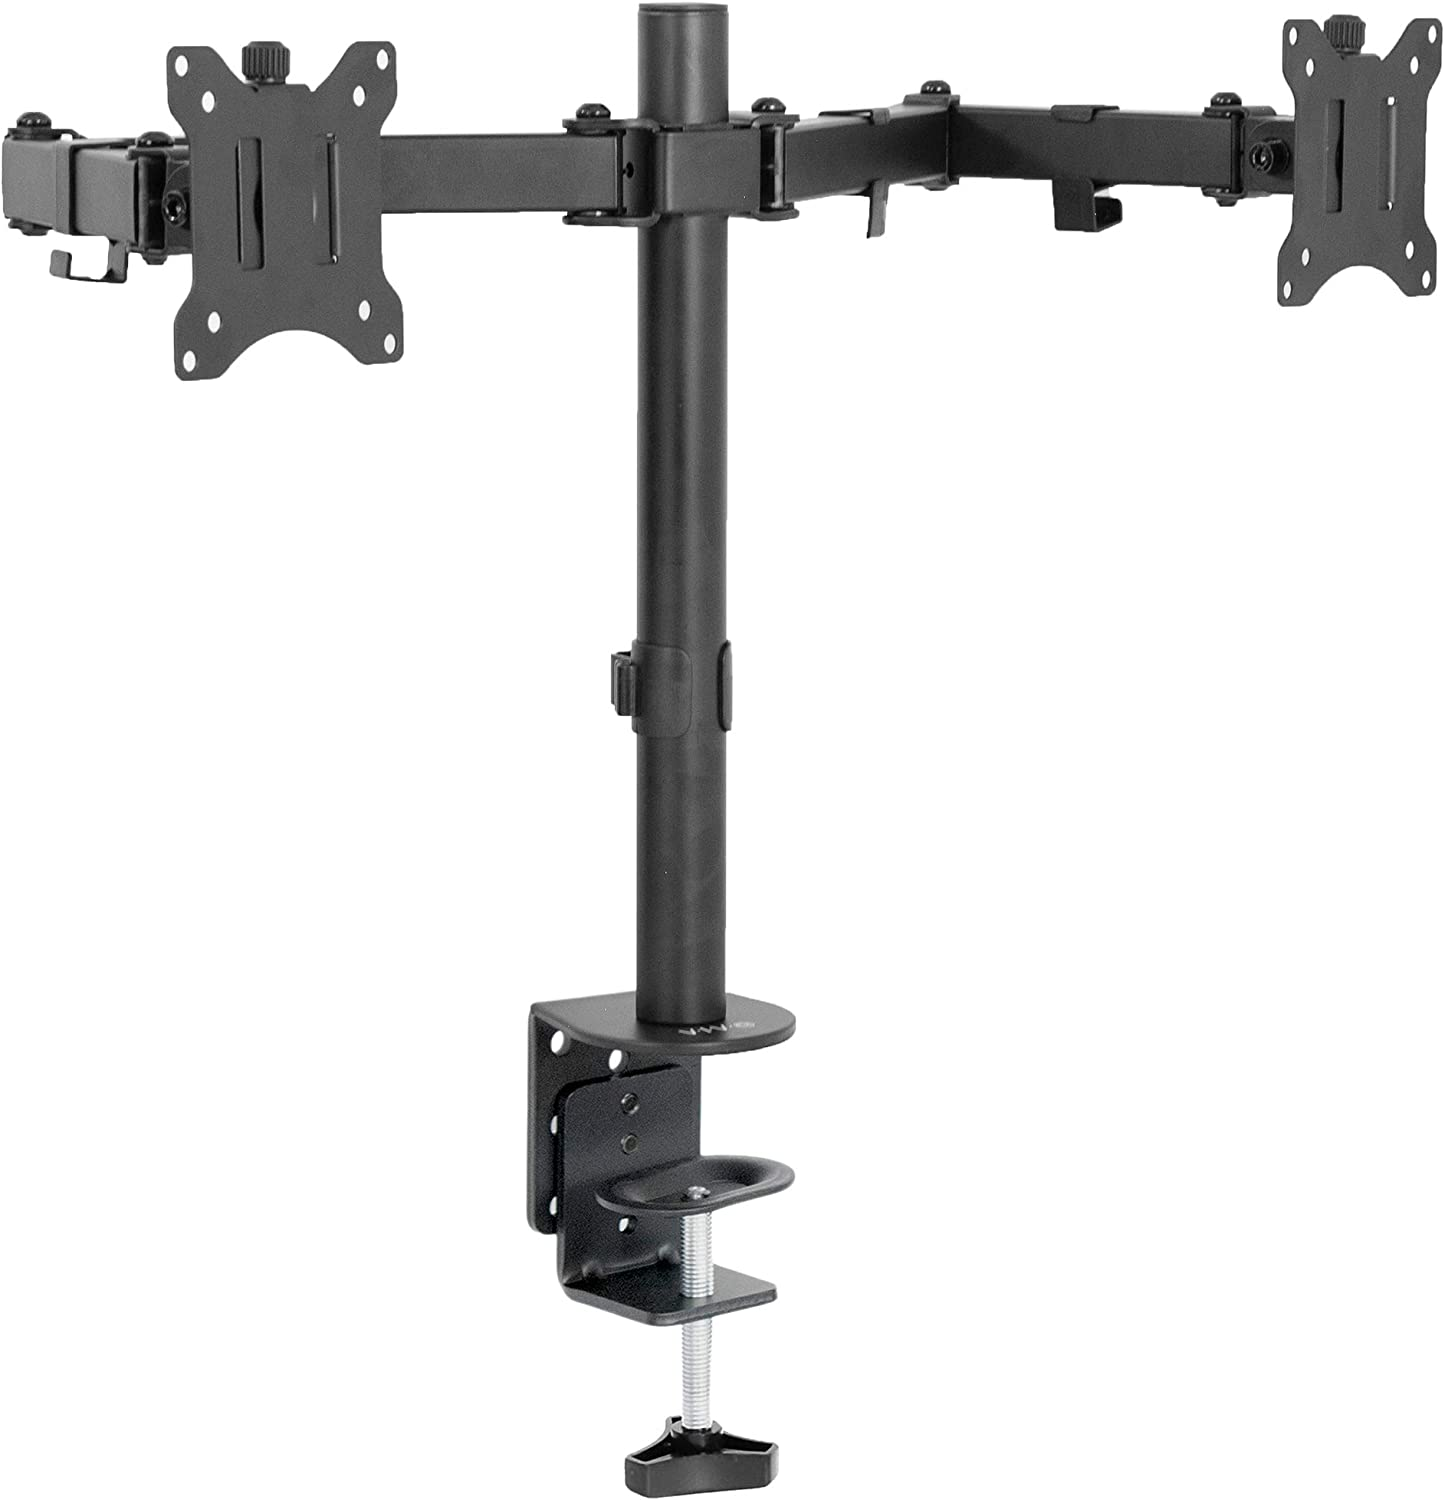 VIVO Dual 13 to 30 inch LCD Monitor Desk Mount, Fully Adjustable Stand with Tilt and Swivel, Holds 2 Screens with Max VESA 100x100, STAND-V200B